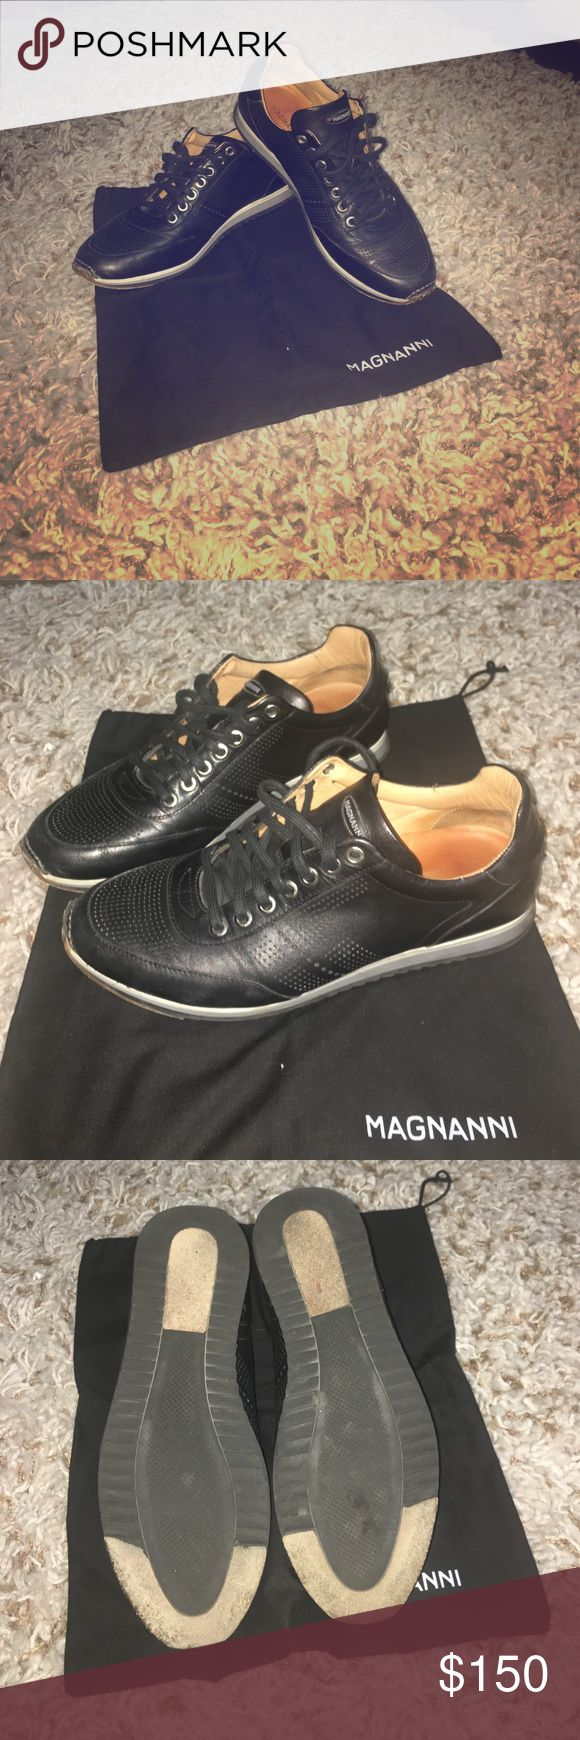 Men's Magnanni Shoes Expensive Magnanni shoes!!  Hand finished calfskin snea...